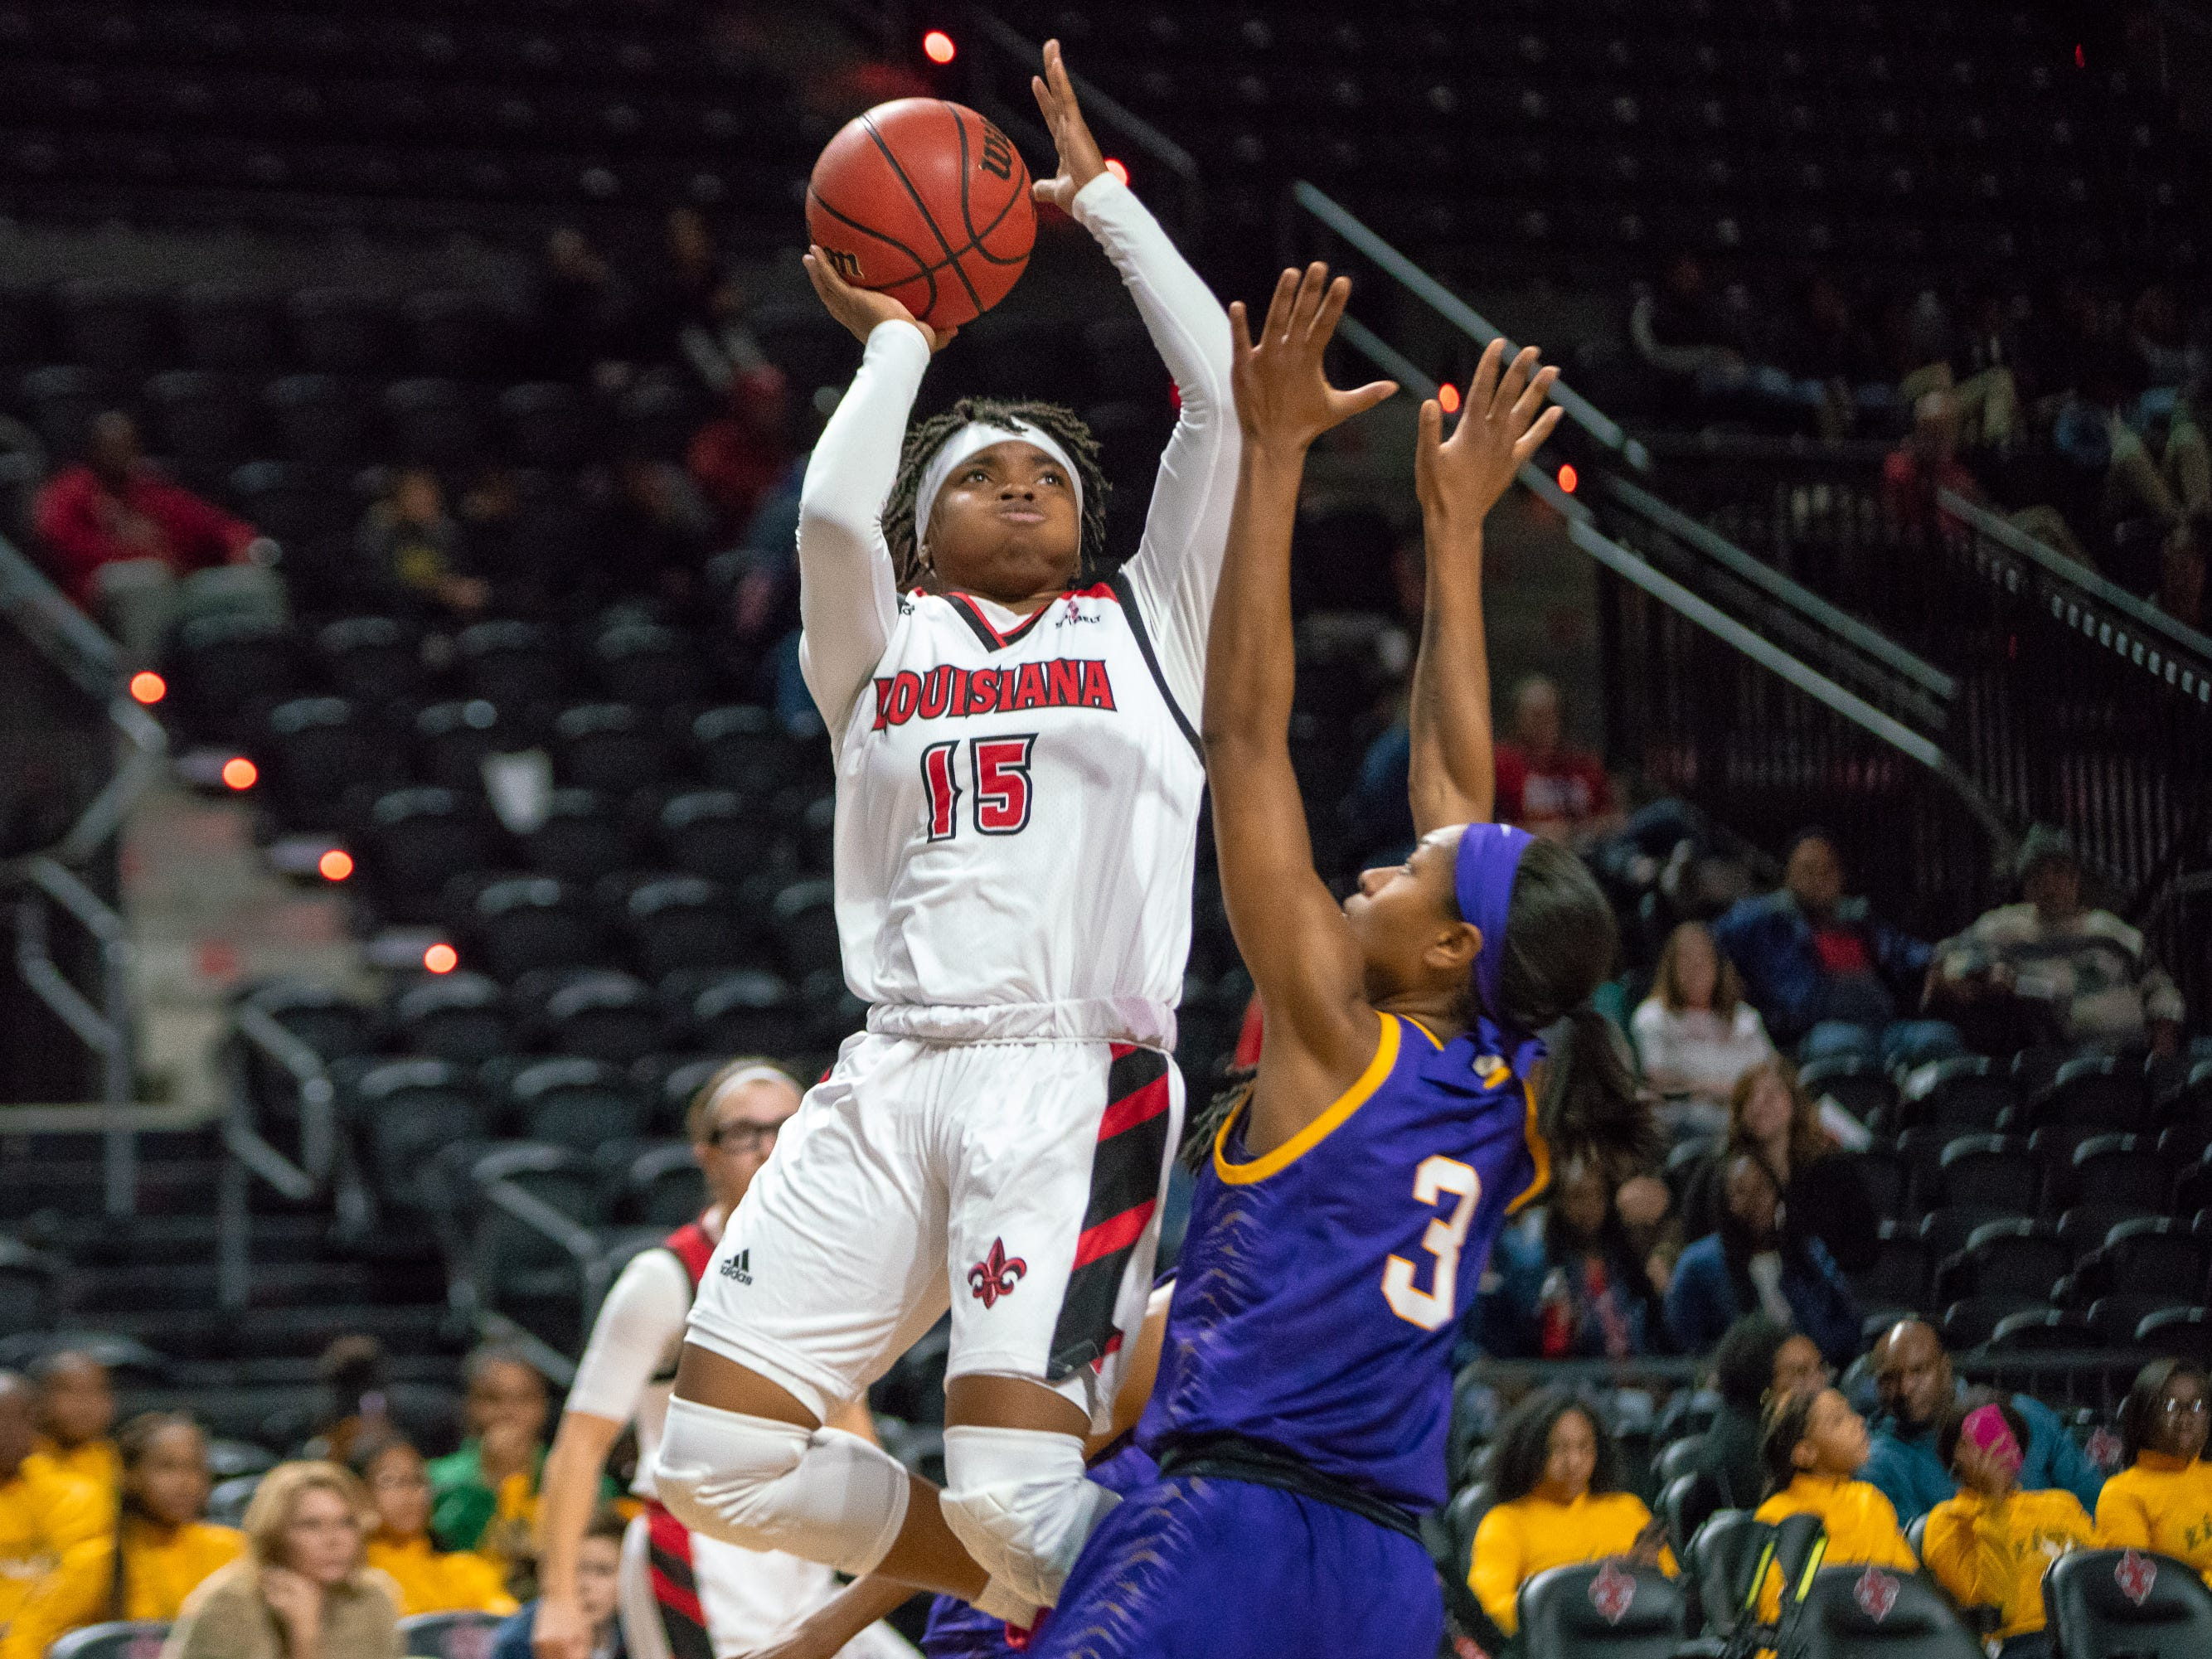 UL's Diamond Morrison shoots over a defender as the Ragin' Cajuns play against LSU Tigers at the Cajundome on Dec. 20, 2018.